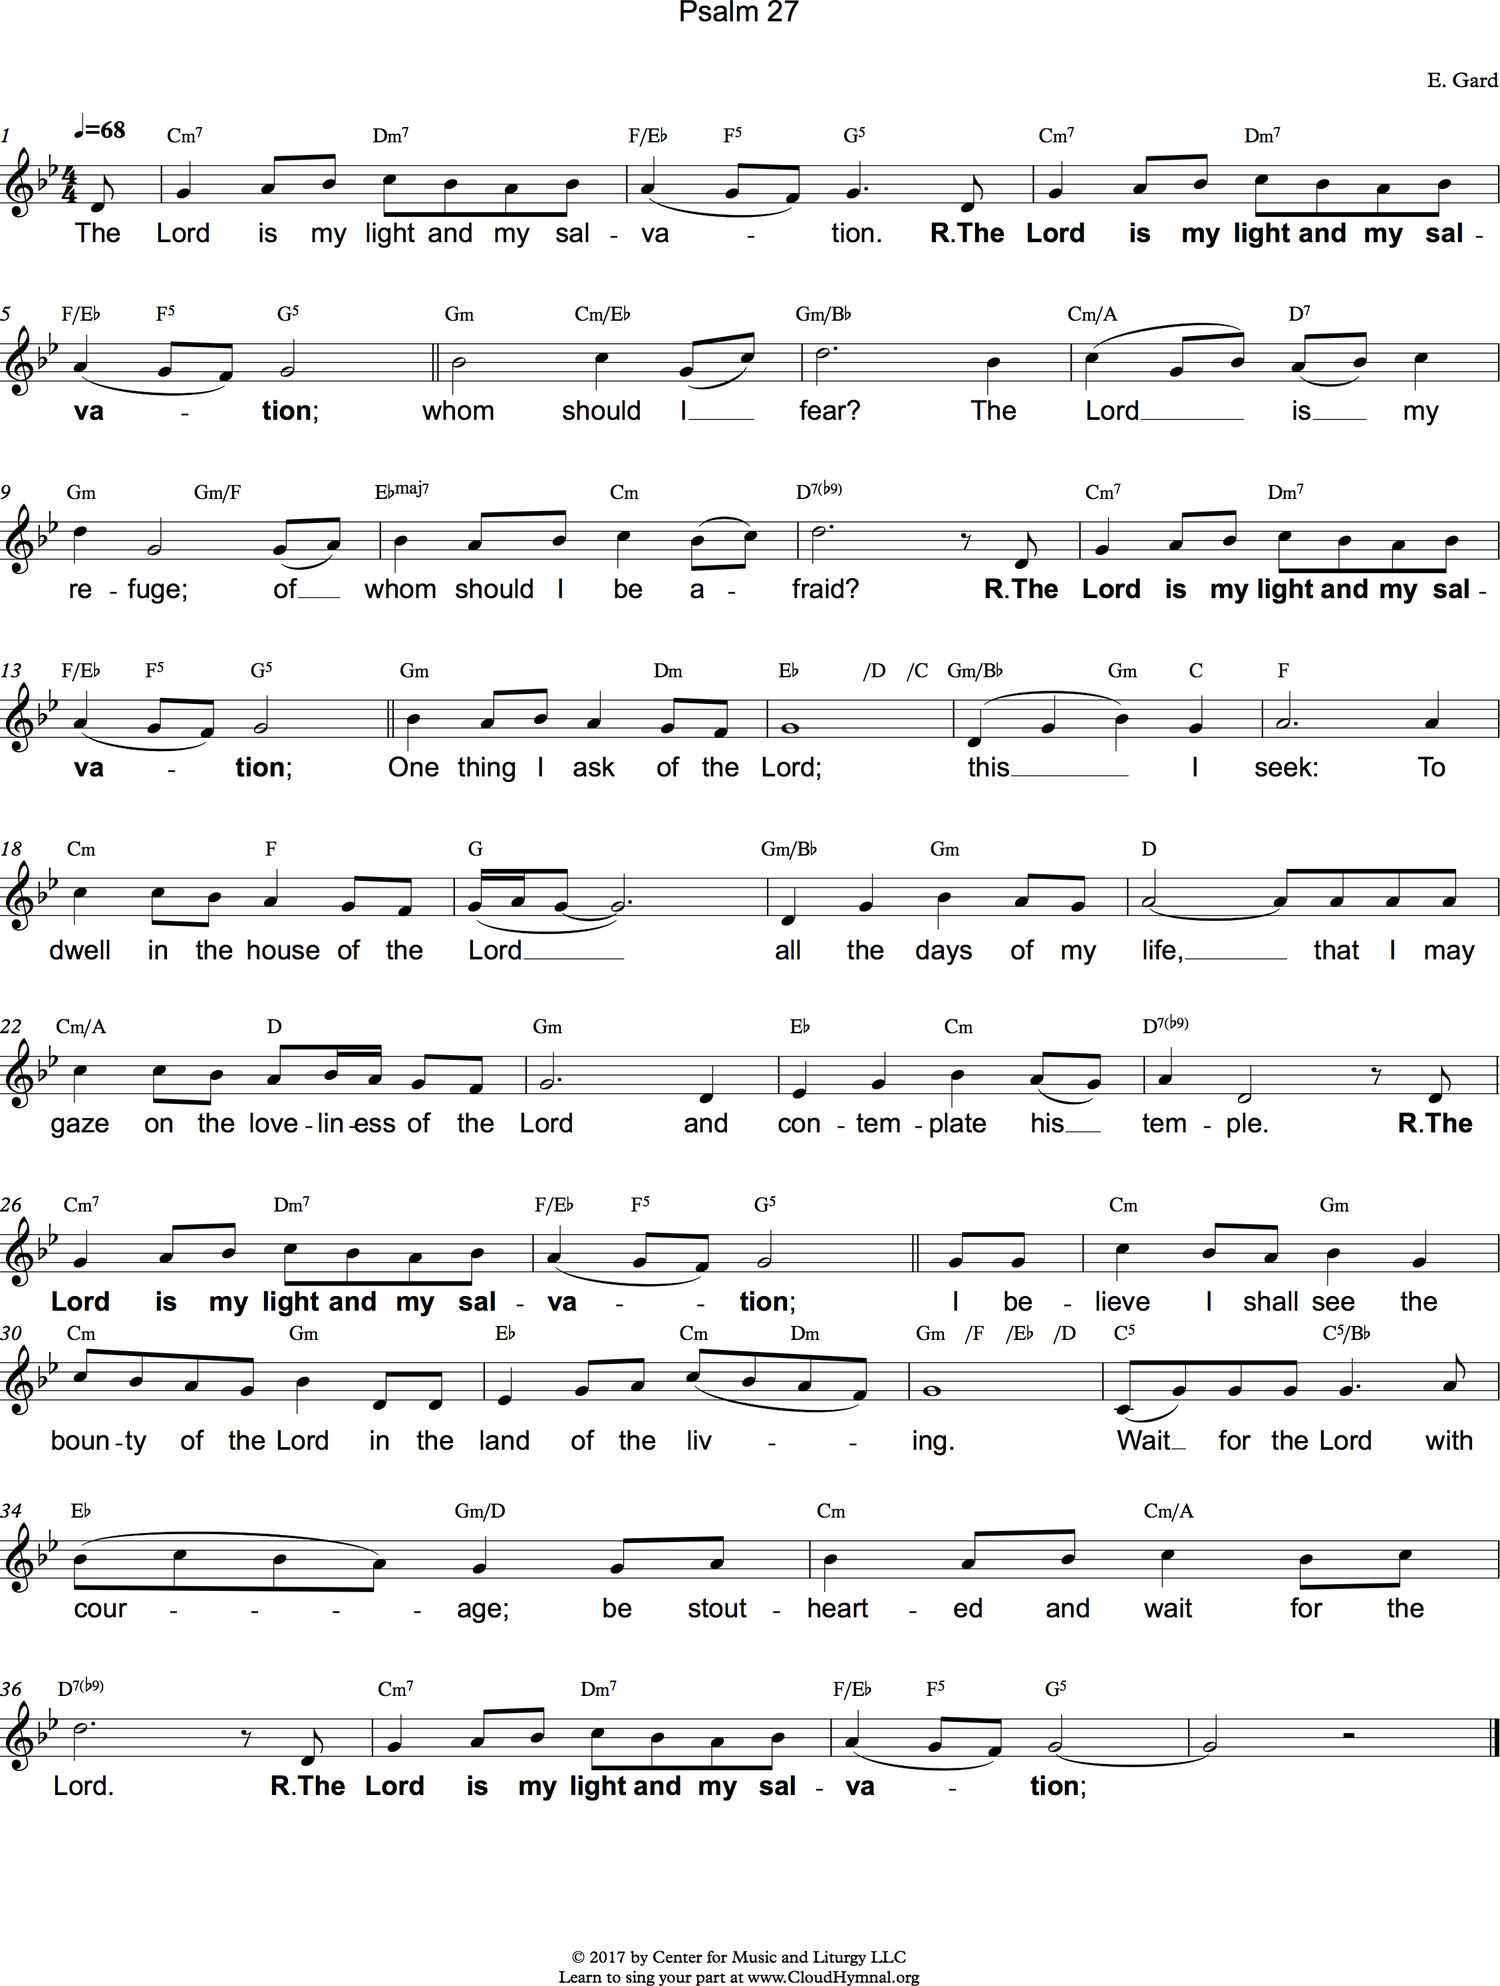 Stm choir cloud hymnal those who love and those who labor ode to joy hexwebz Image collections